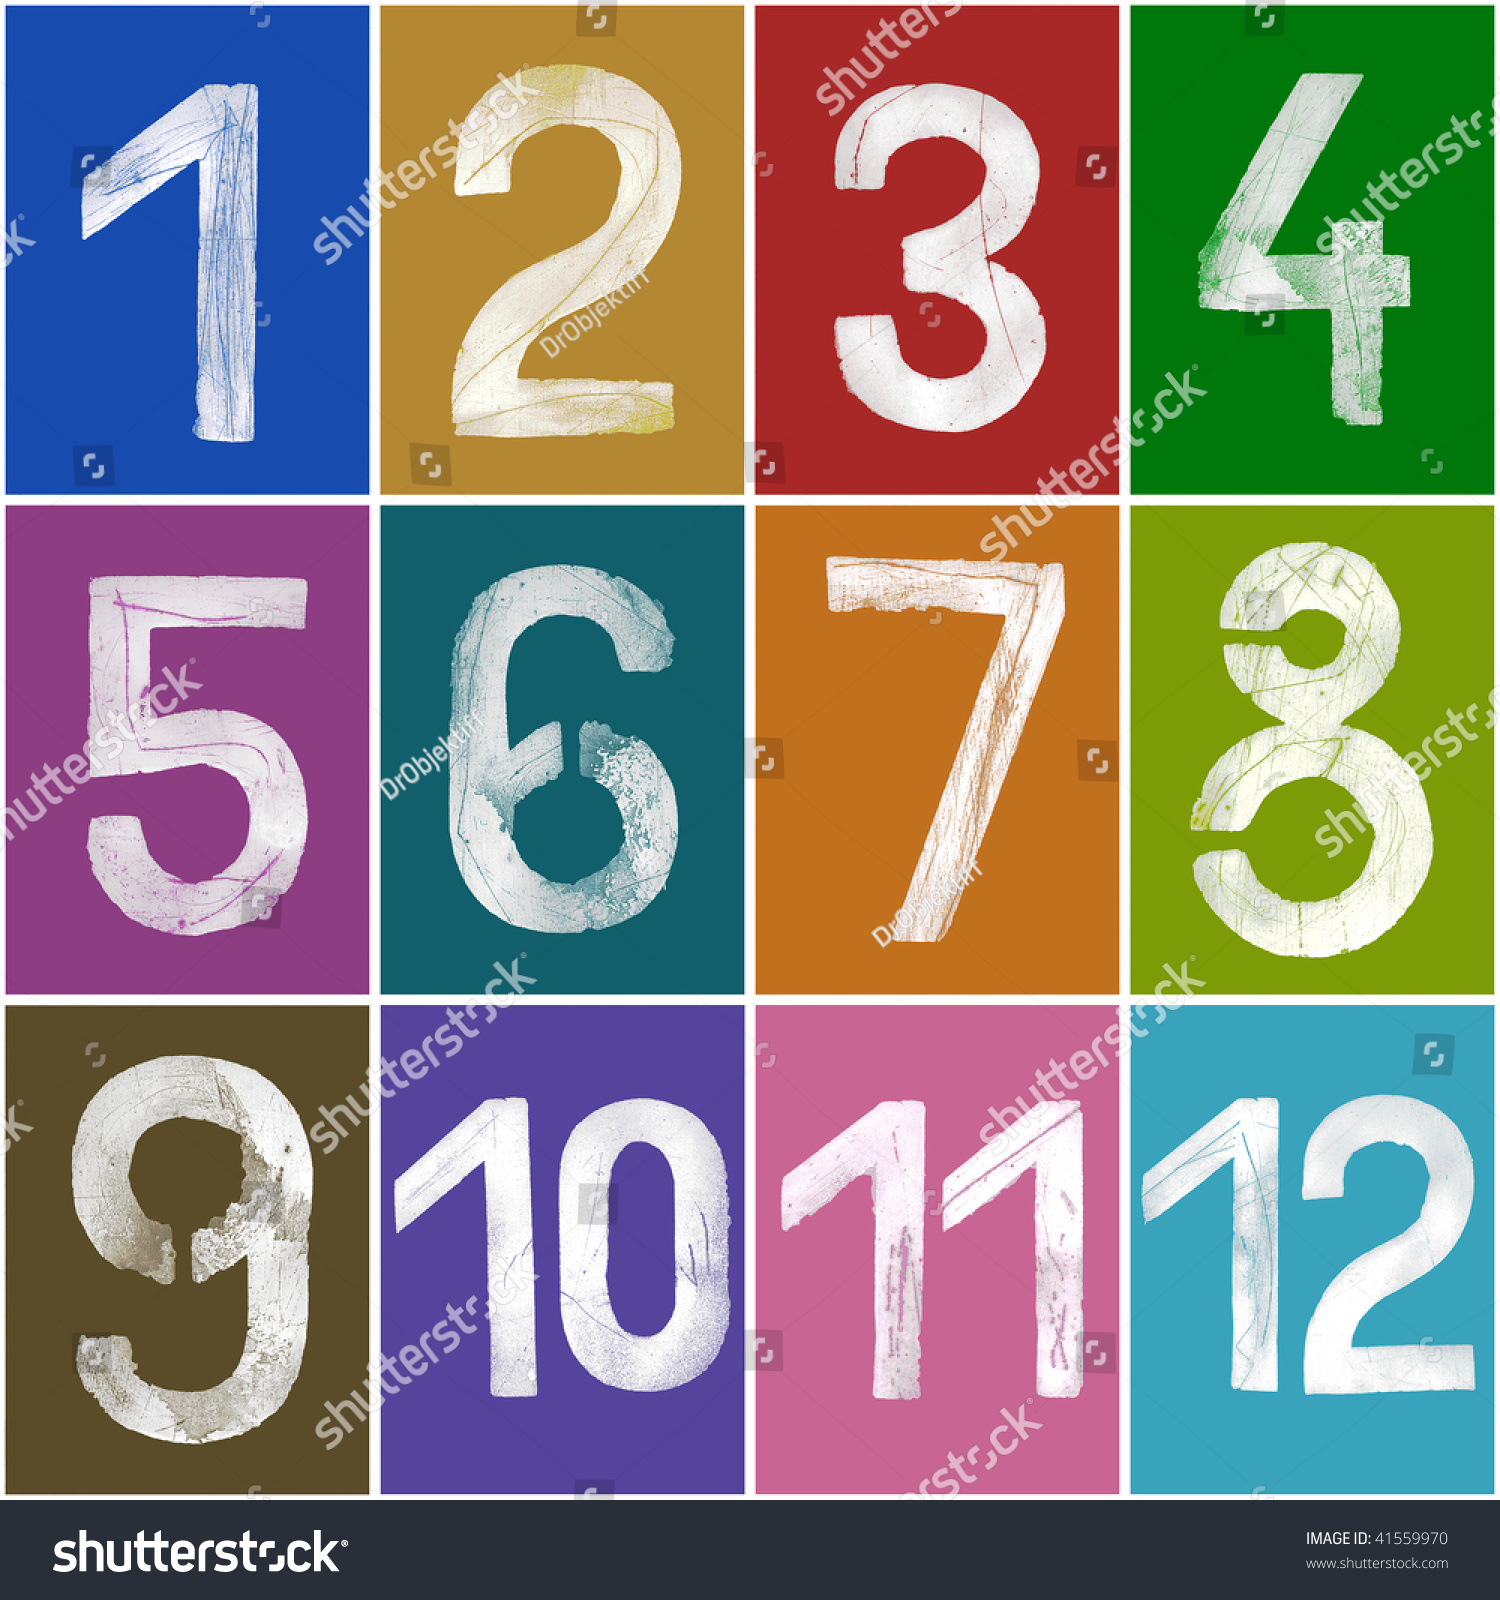 Grungy Numbers V1 (1-12) With Grainy Surface, Xxl Size Stock Photo ...